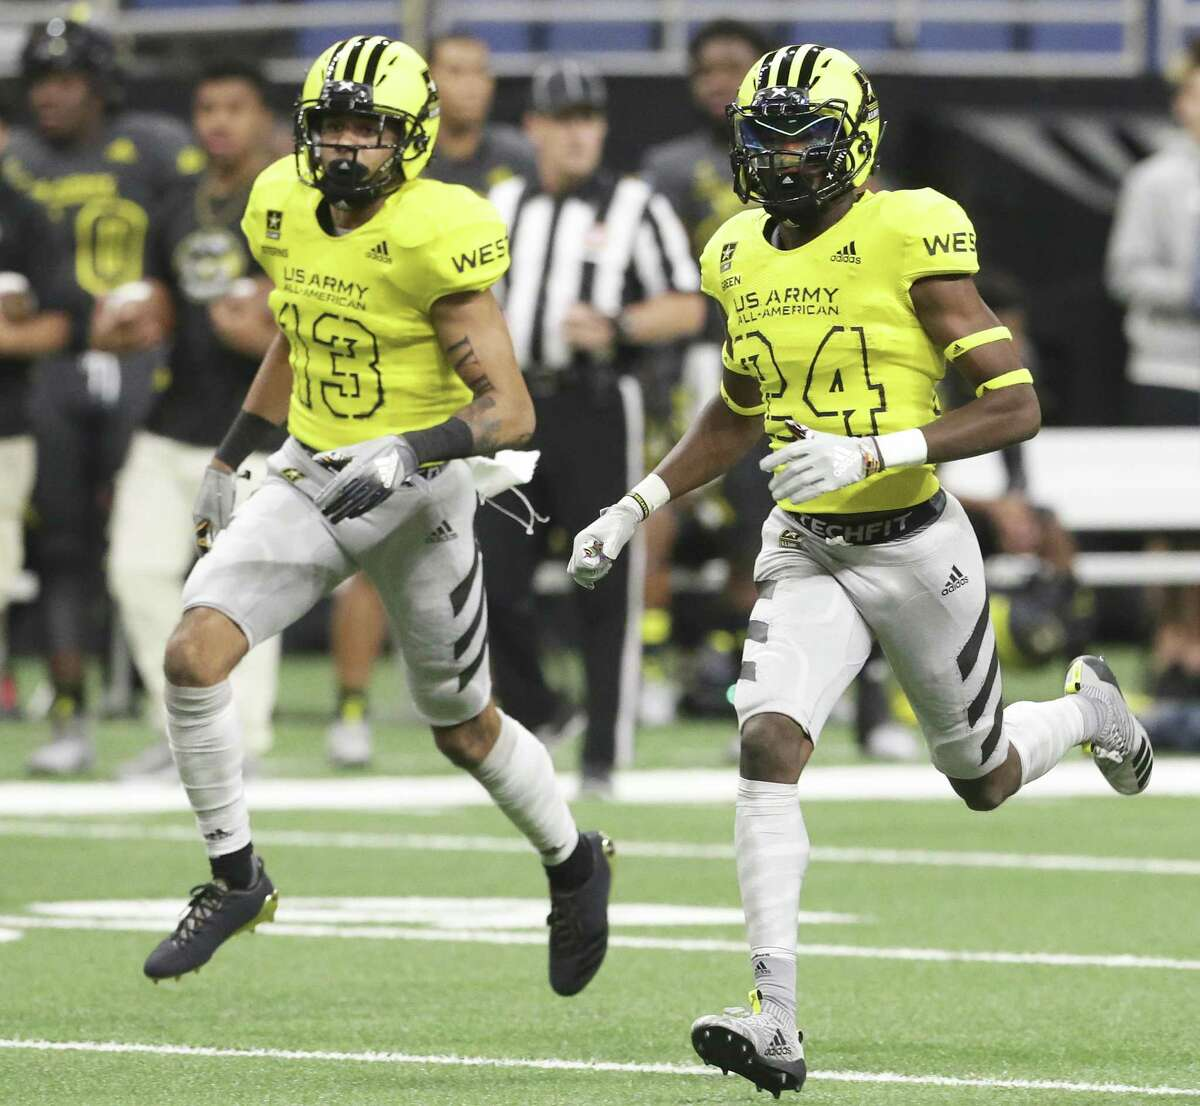 Caden Sterns (13) and Jalen Green cover on a kickoff at the U.S. Army All-American Bowl at the Alamodome on January 6, 2018